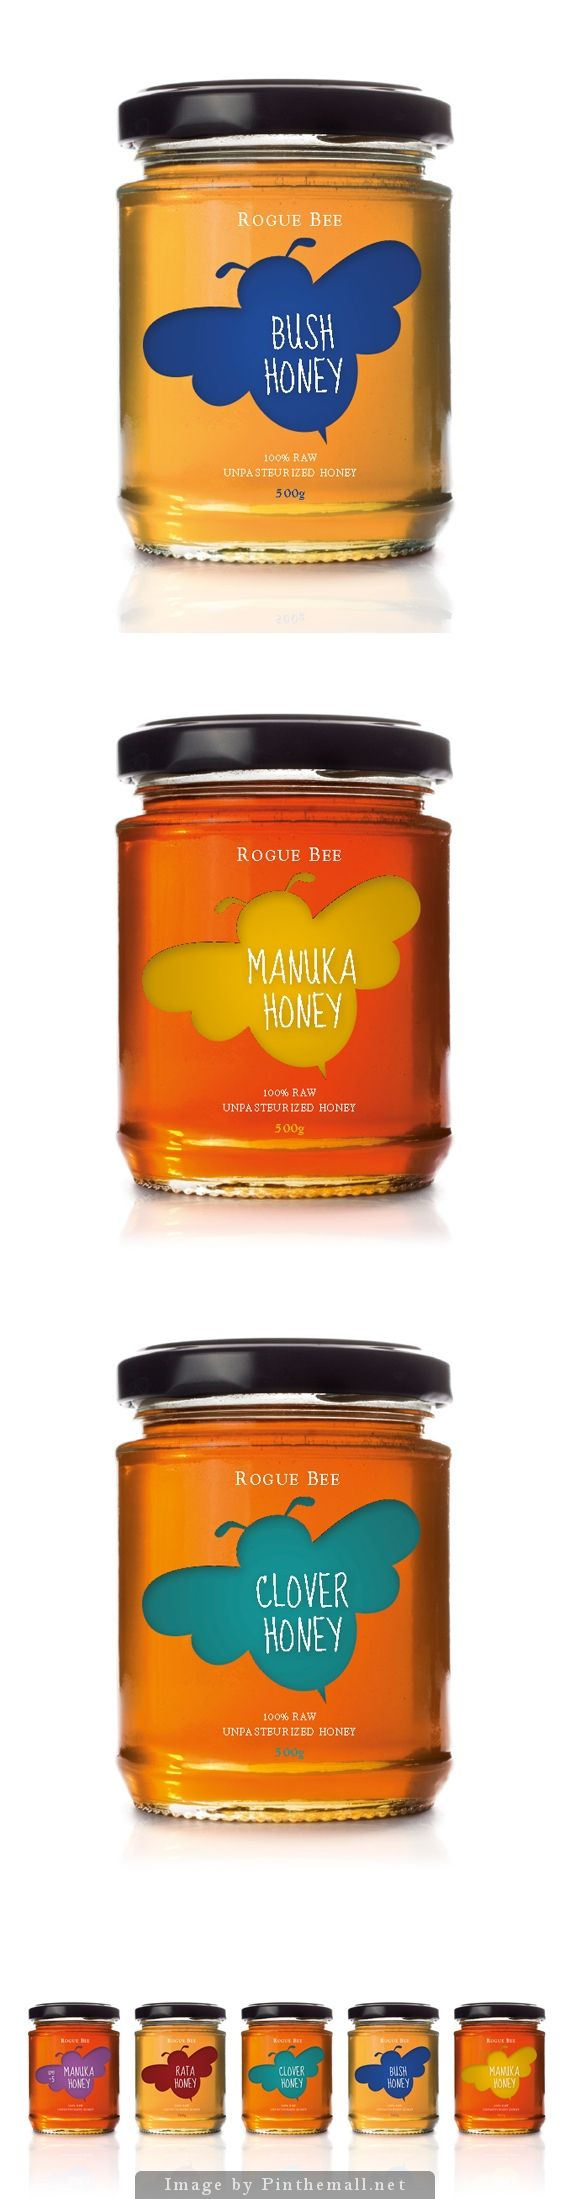 What i like about this label for honey is the single graphic of the honeybee with very little else around it, which by the looks of it was probably printed onto acetate and pasted around the width of the jar.